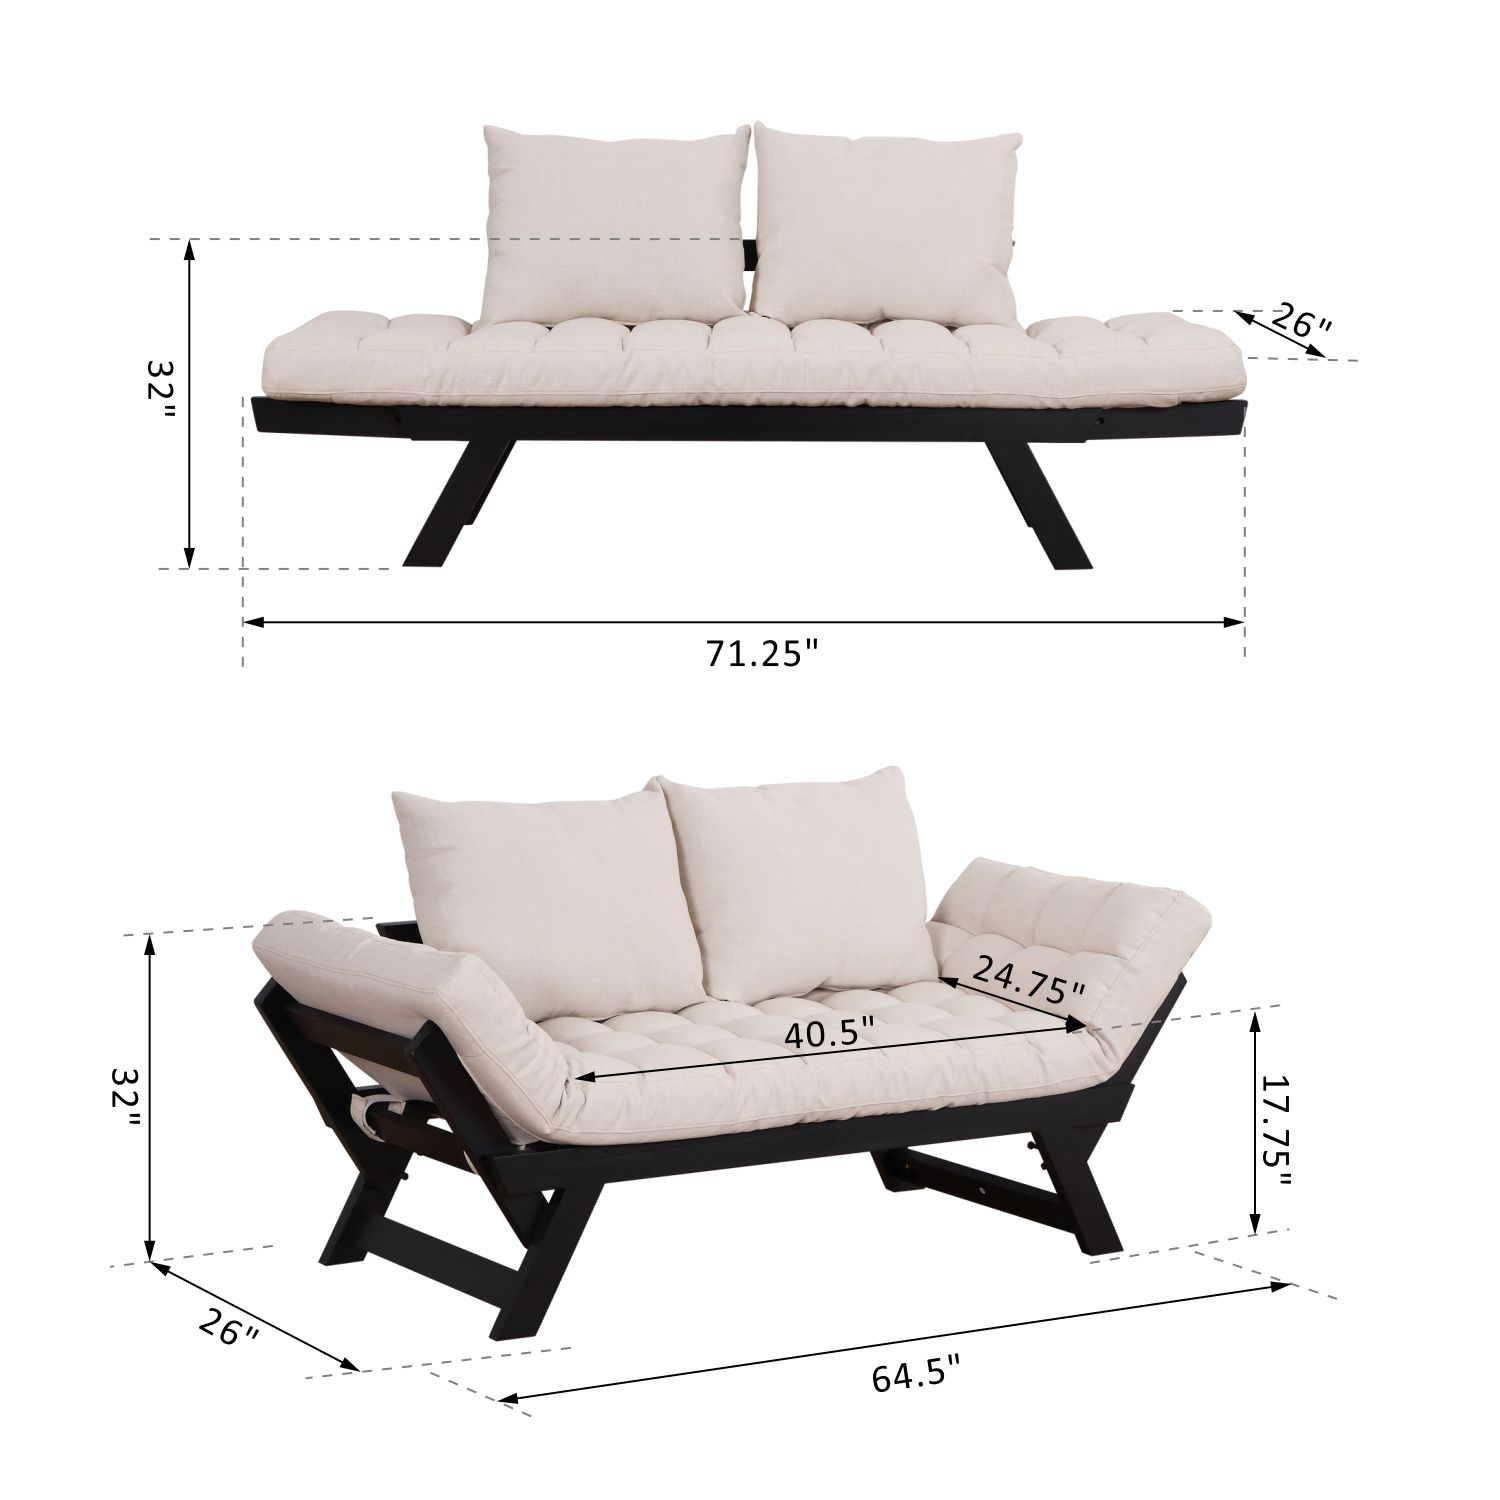 Convertible-Sofa-Bed-Sleeper-Couch-Chaise-Lounge-Chair-Adjustable-Padded-Pillow thumbnail 3